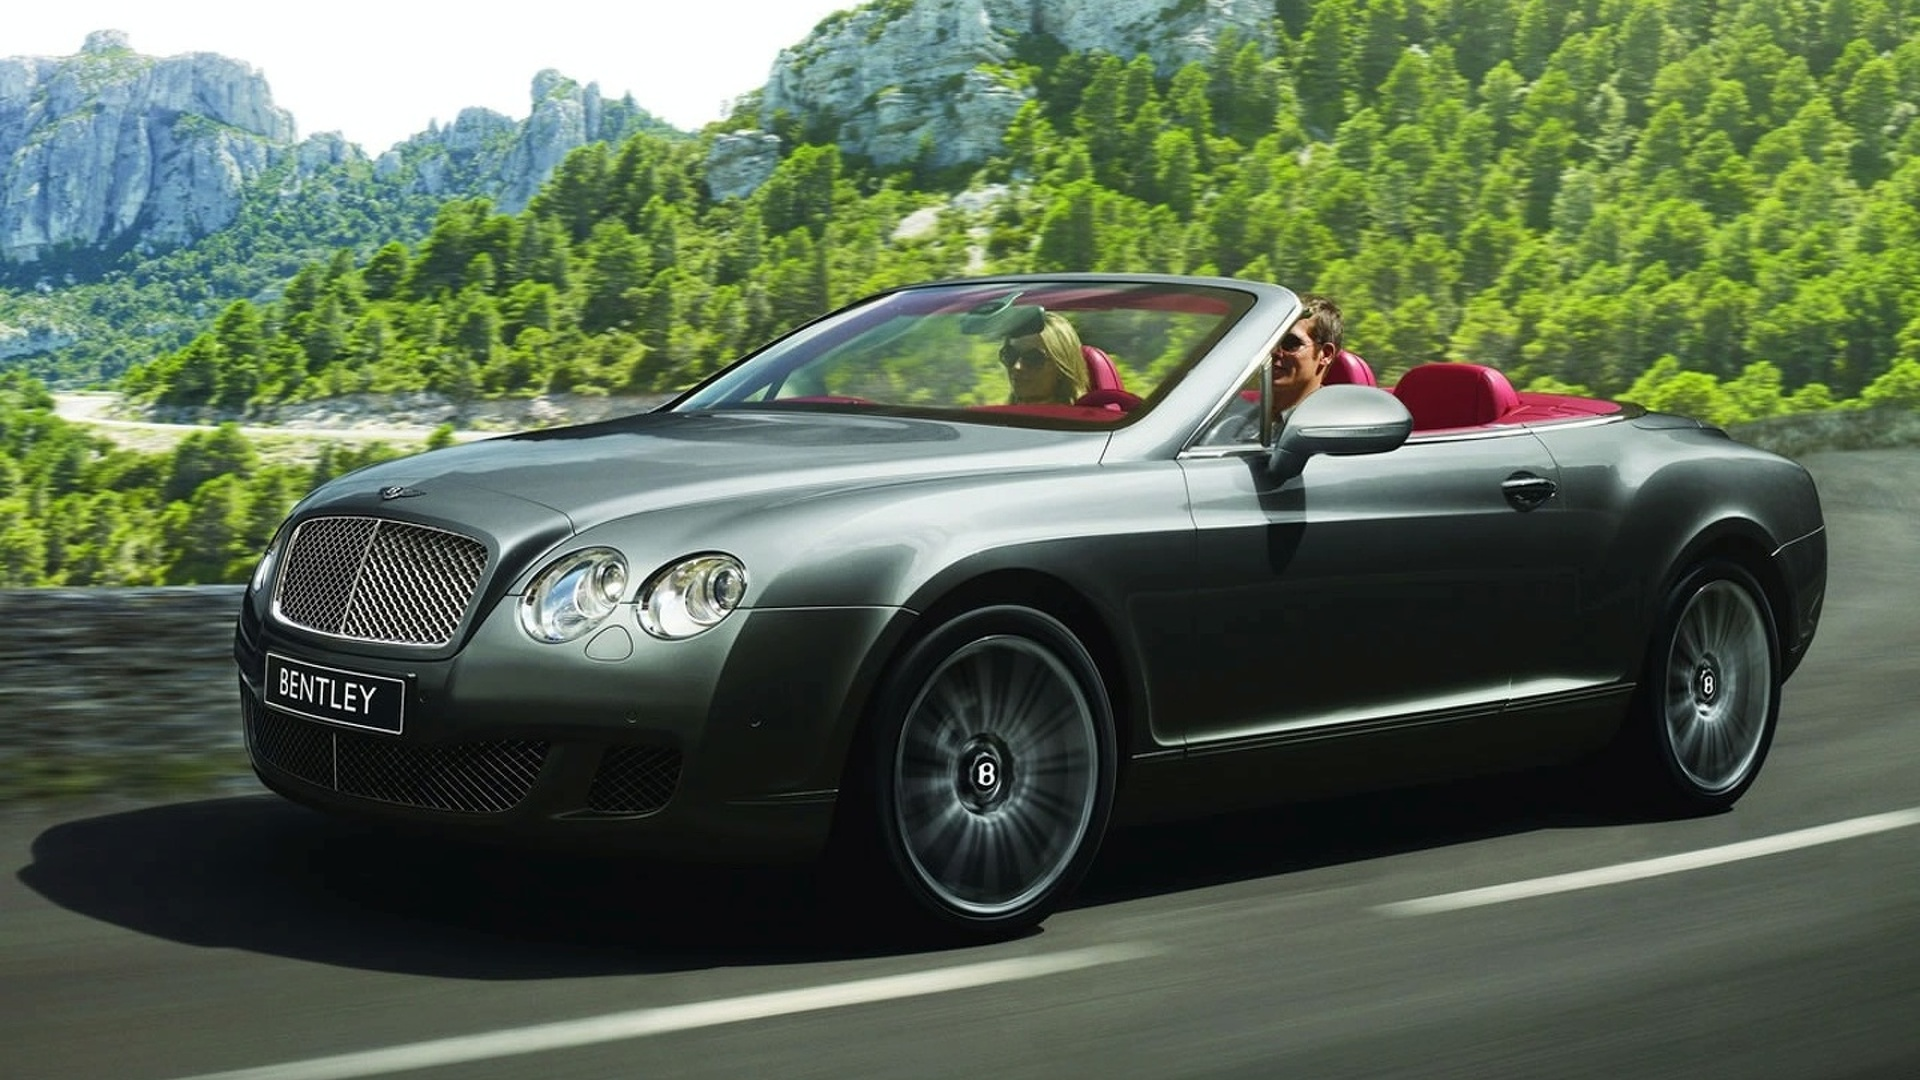 First Pictures: Bentley set to Unveil Facelifted GTC  & GTC Speed